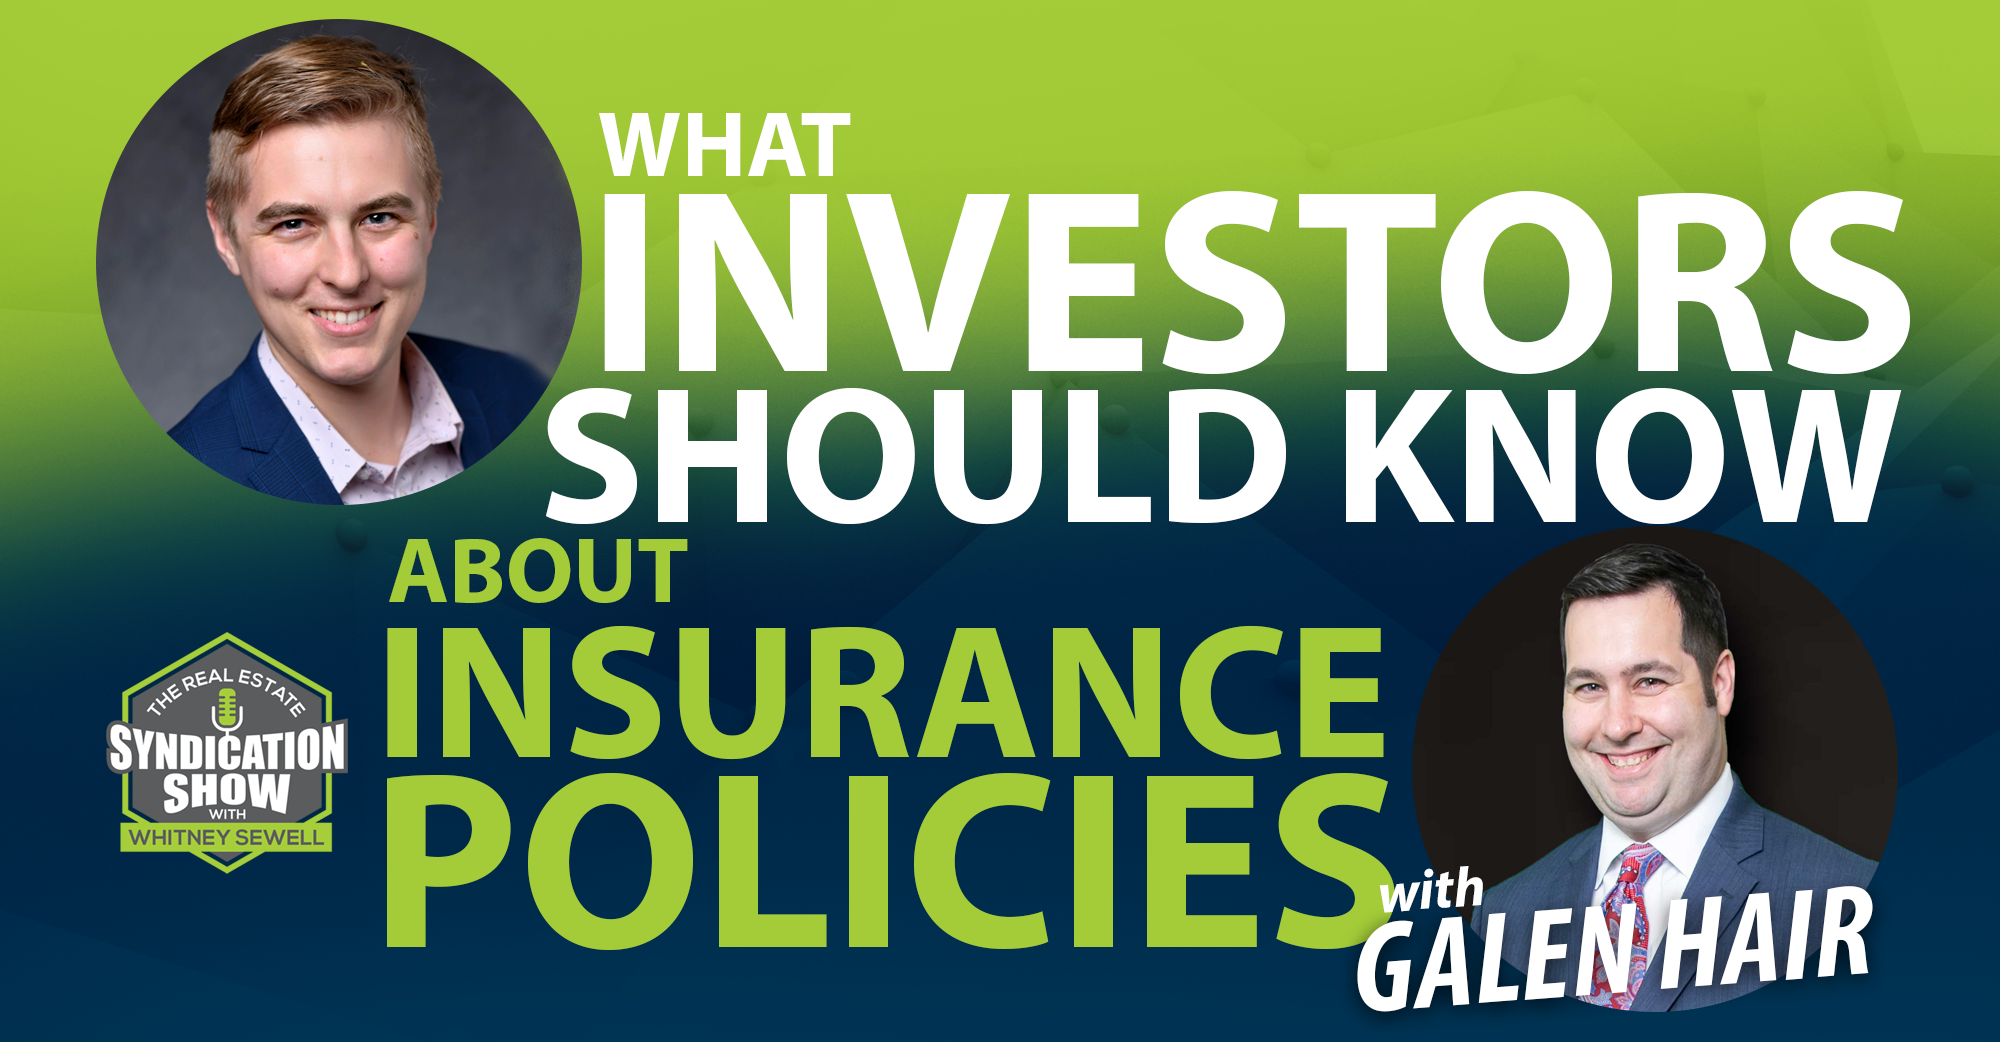 What Investors Should Know About Insurance Policies with Galen Hair